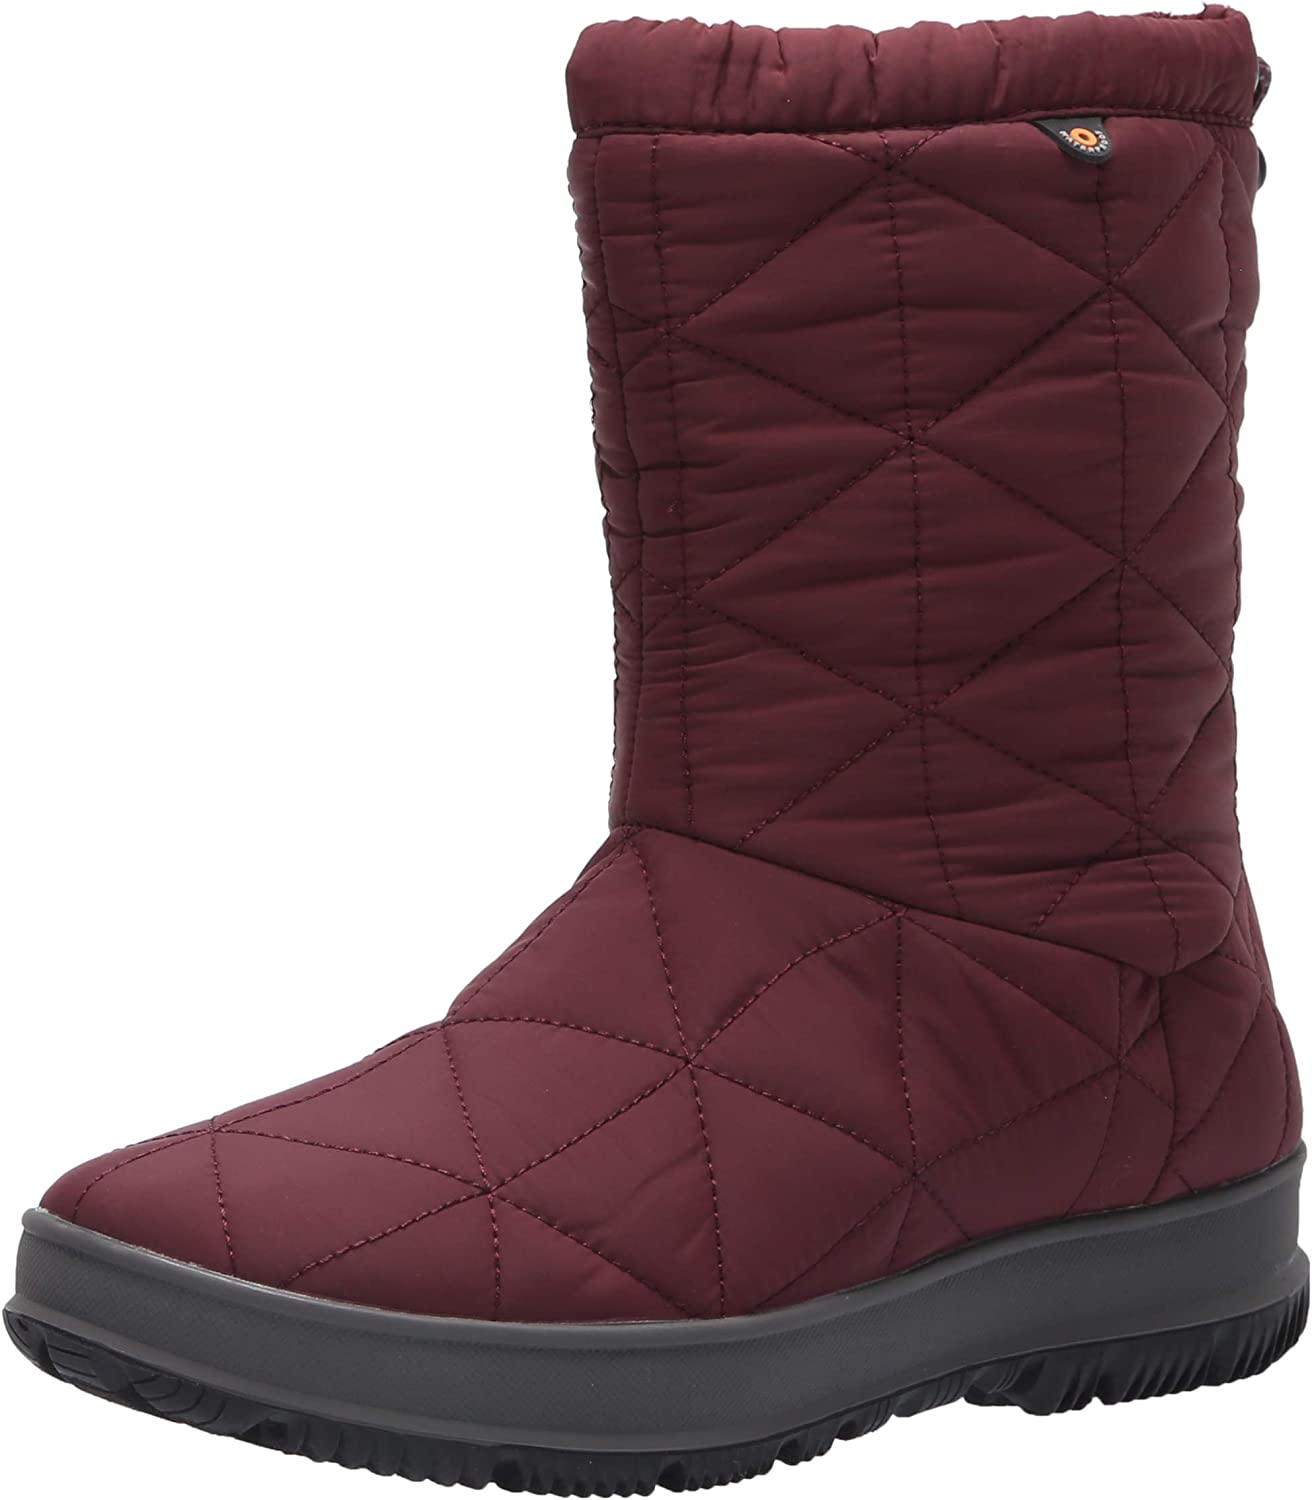 BOGS Womens Snowday Mid Snow Boot, Wine, Size